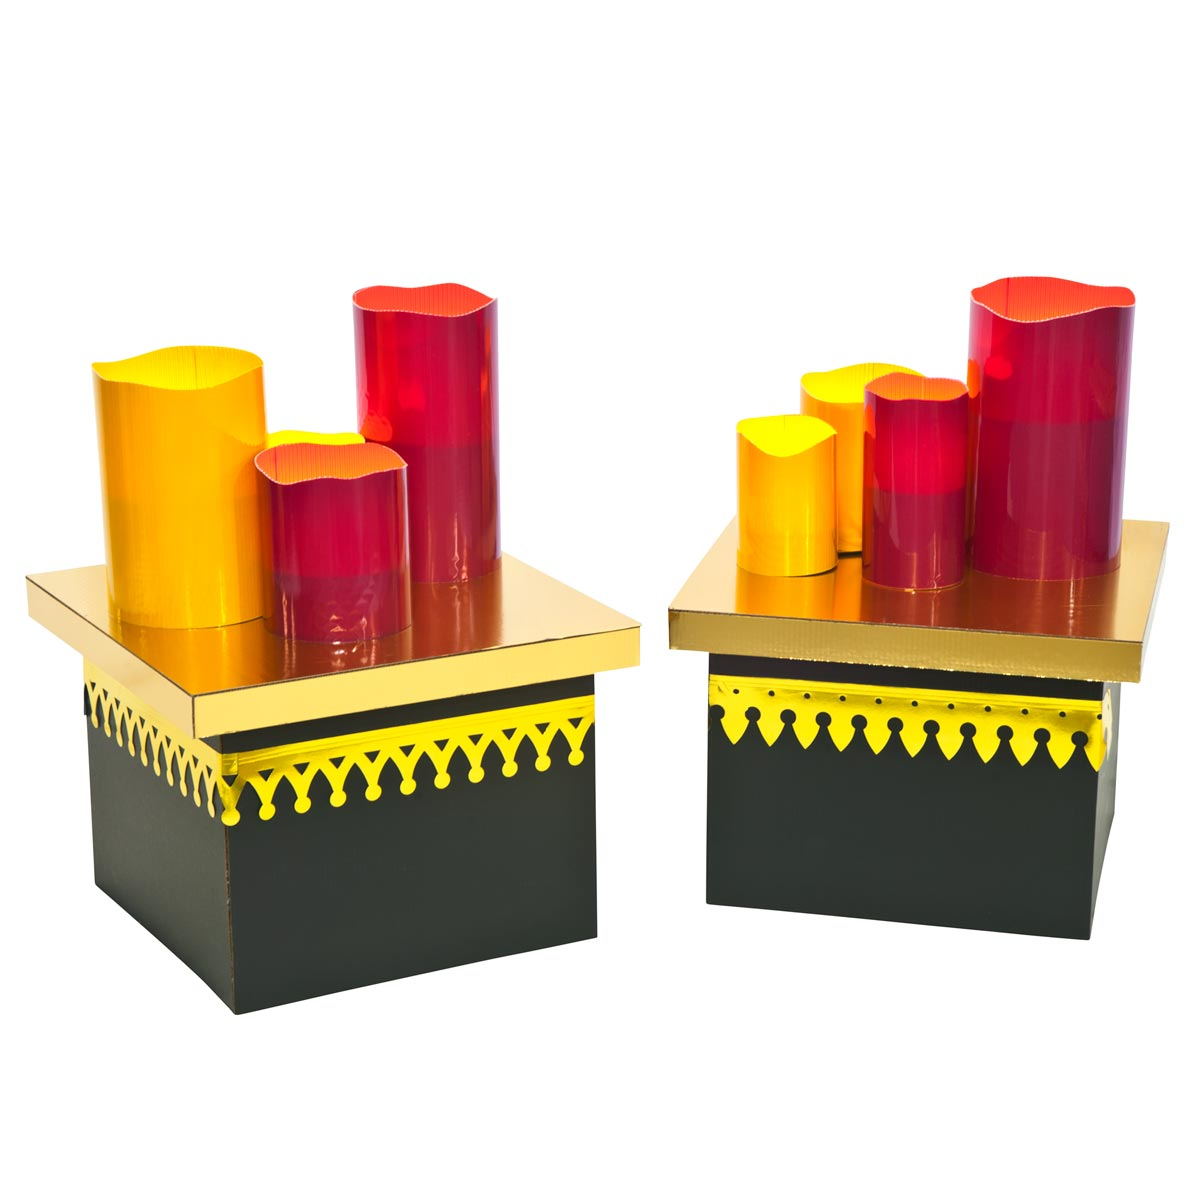 Moment of Zen Tables with Candles Kit (set of 2)